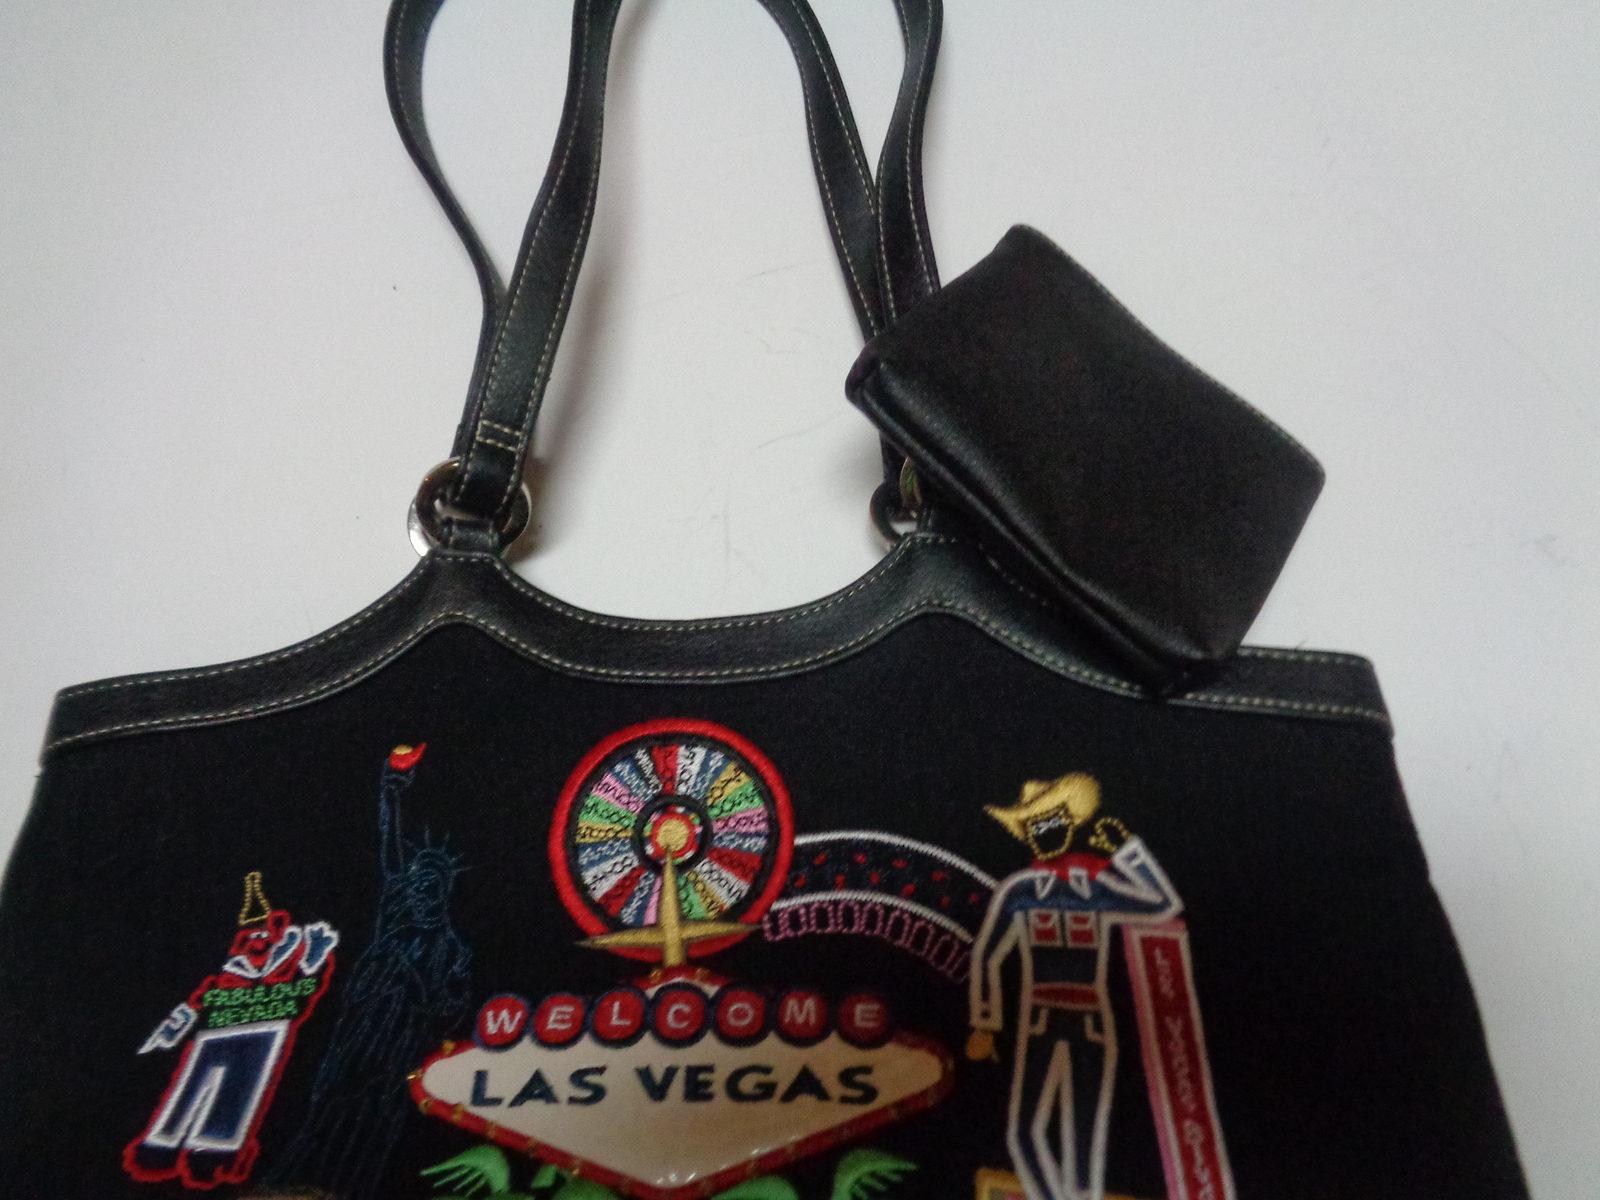 Las Vegas Nevada Casino Party Purse Black W/Las Vegas Images